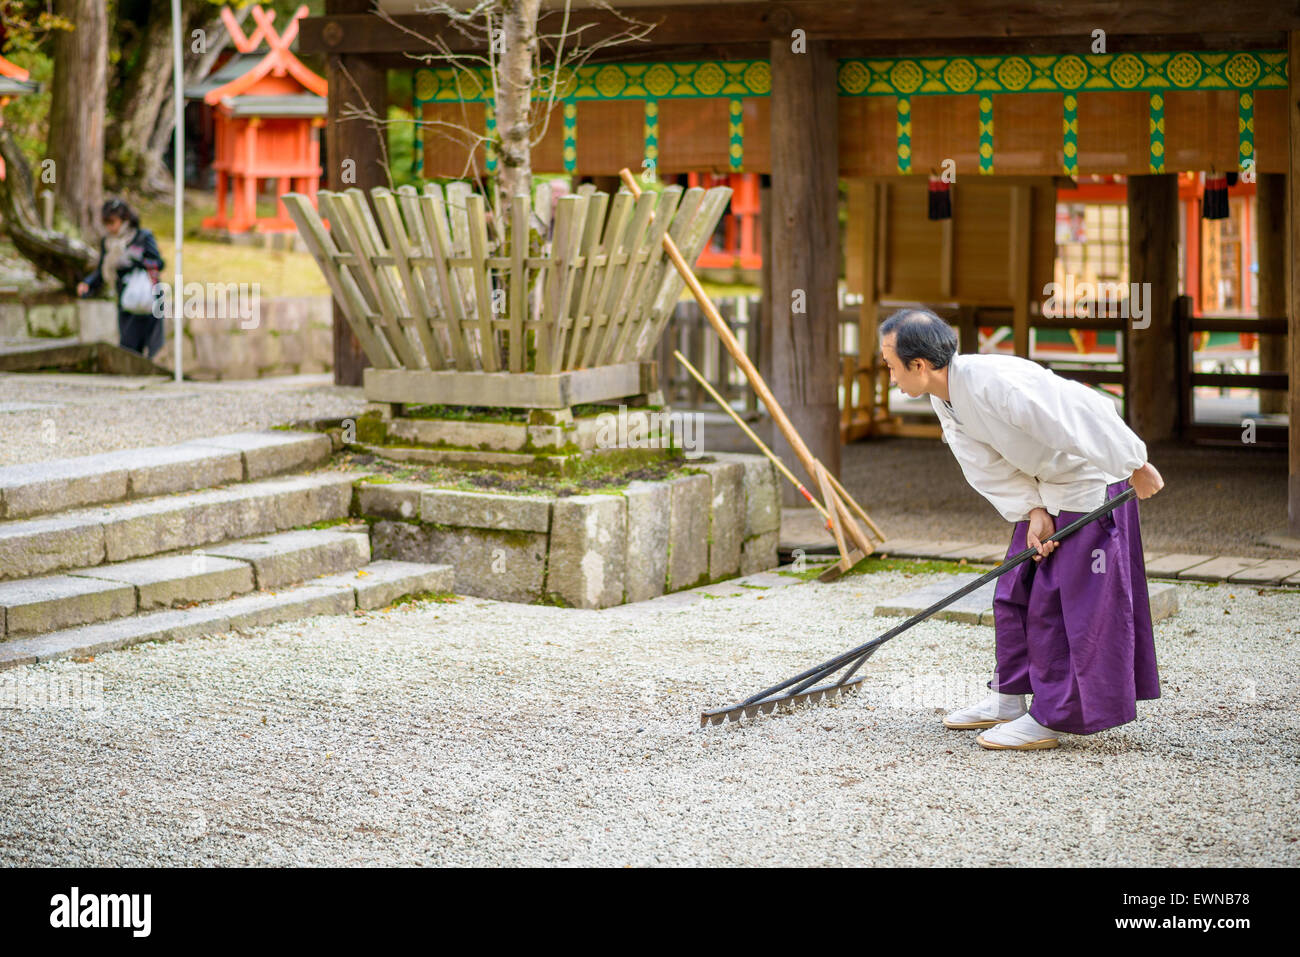 A Shinto Priest rakes a gravel Zen Garden at Kasuga-Taisha Shrine in Nara, Japan. - Stock Image